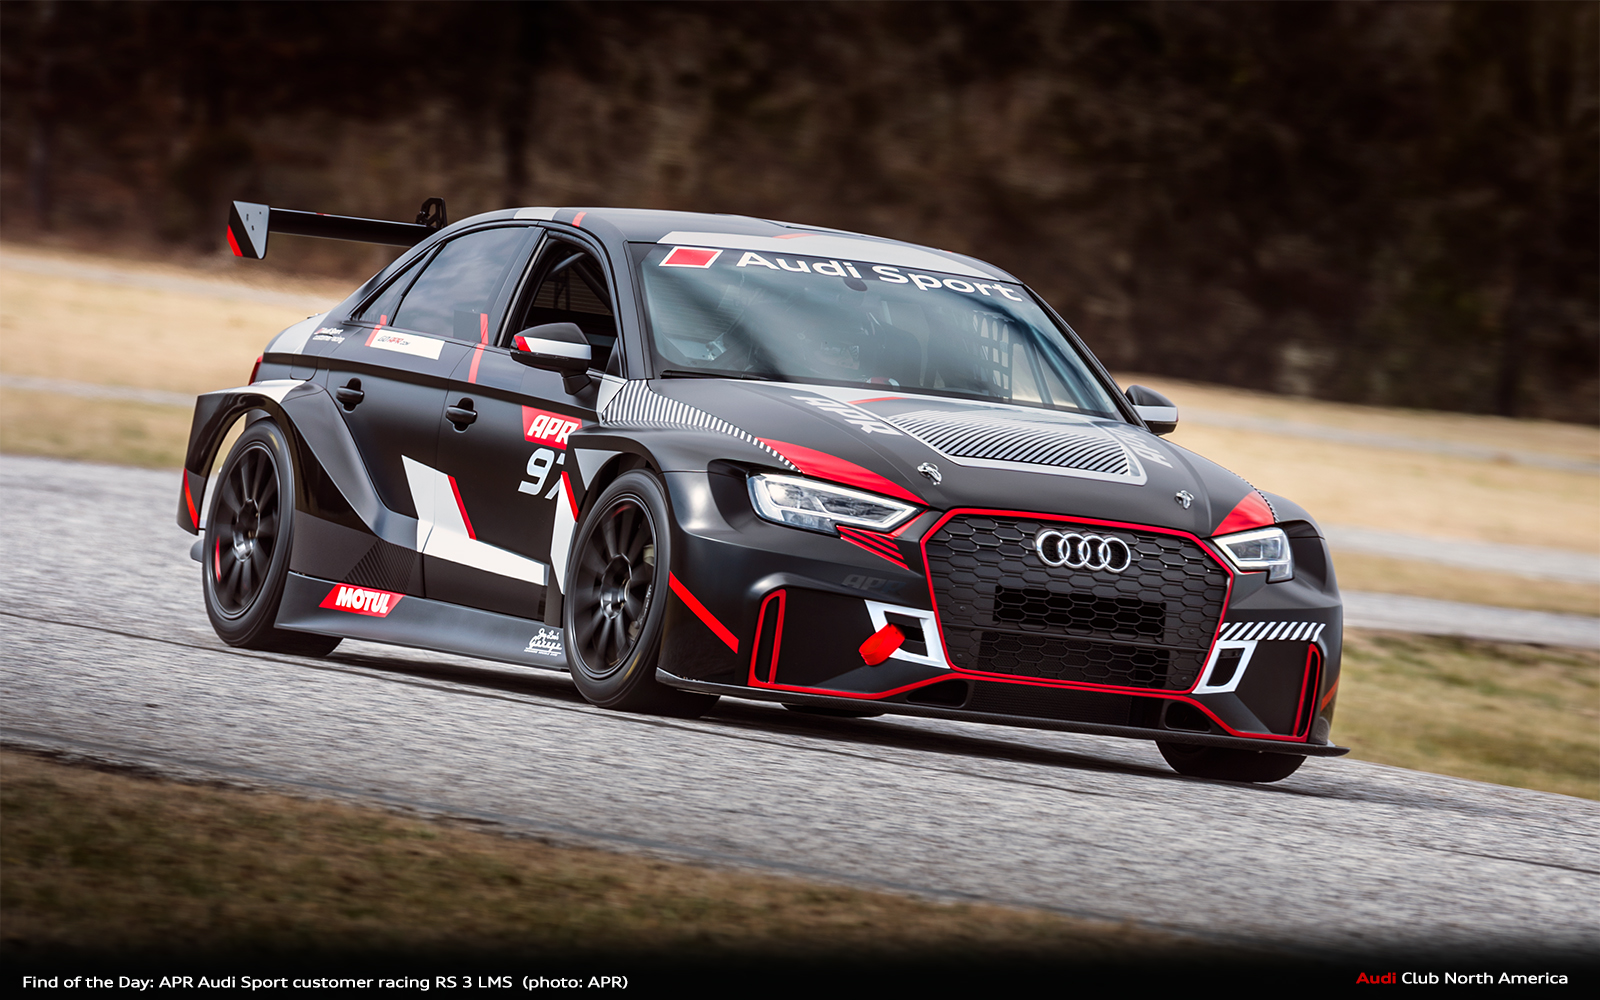 Find of the Day: APR Audi Sport customer racing RS 3 LMS